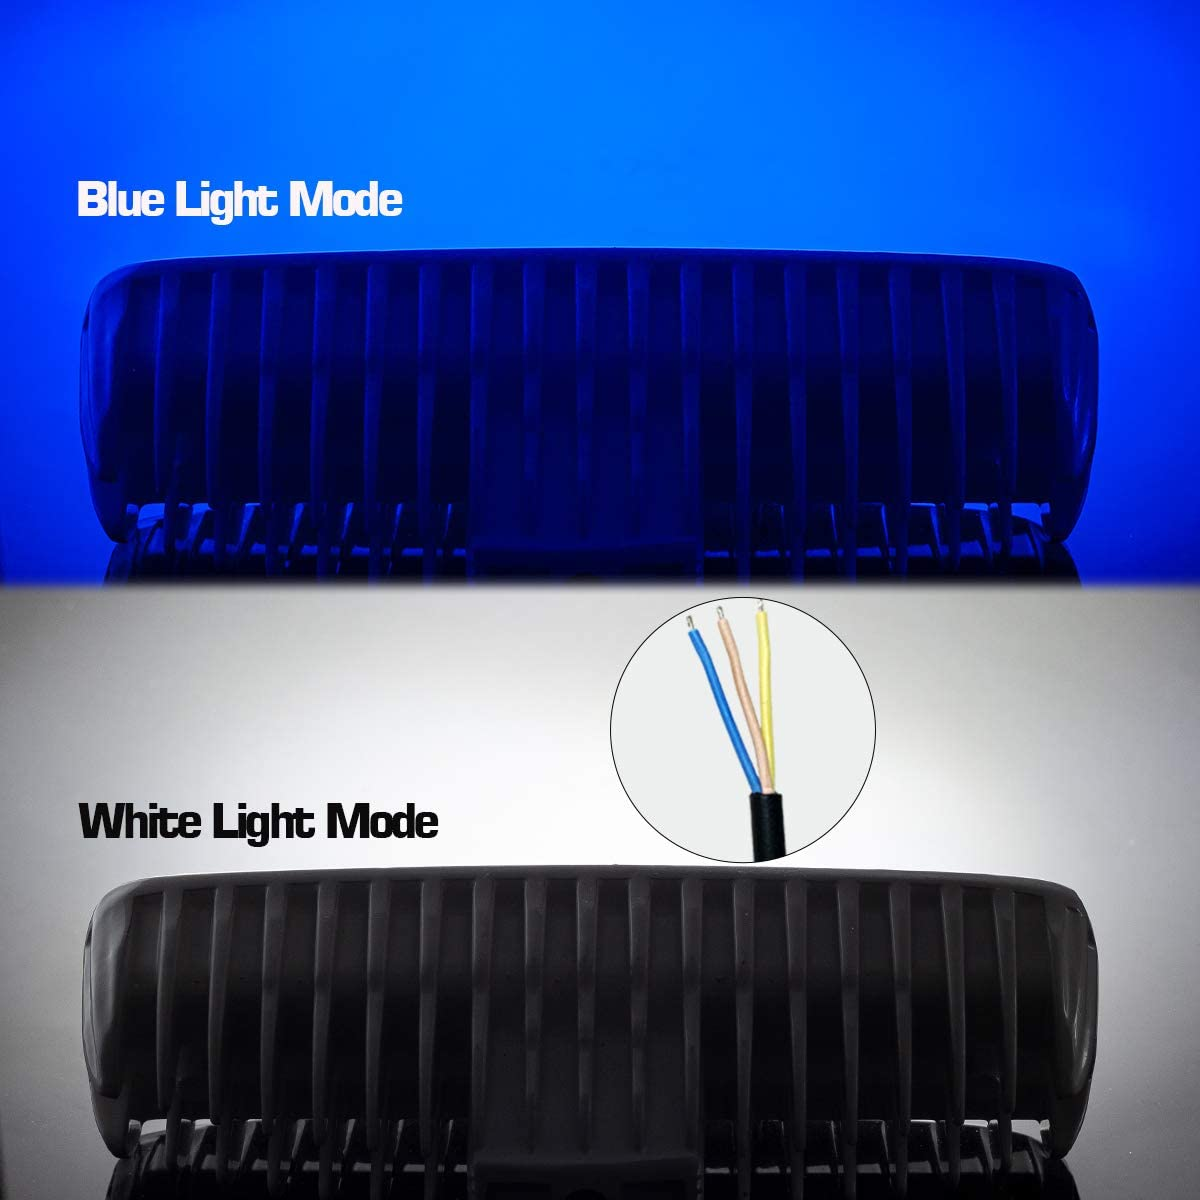 6 inch Deck Dock Fog Lights for Boat Accessories Pontoon Fishing Truck SUV ATV 12V White WFPOWER Boat Light 2 Pack Waterproof 6 Double Row Blue and White Light Color 2 Mode LED Marine Spotlights